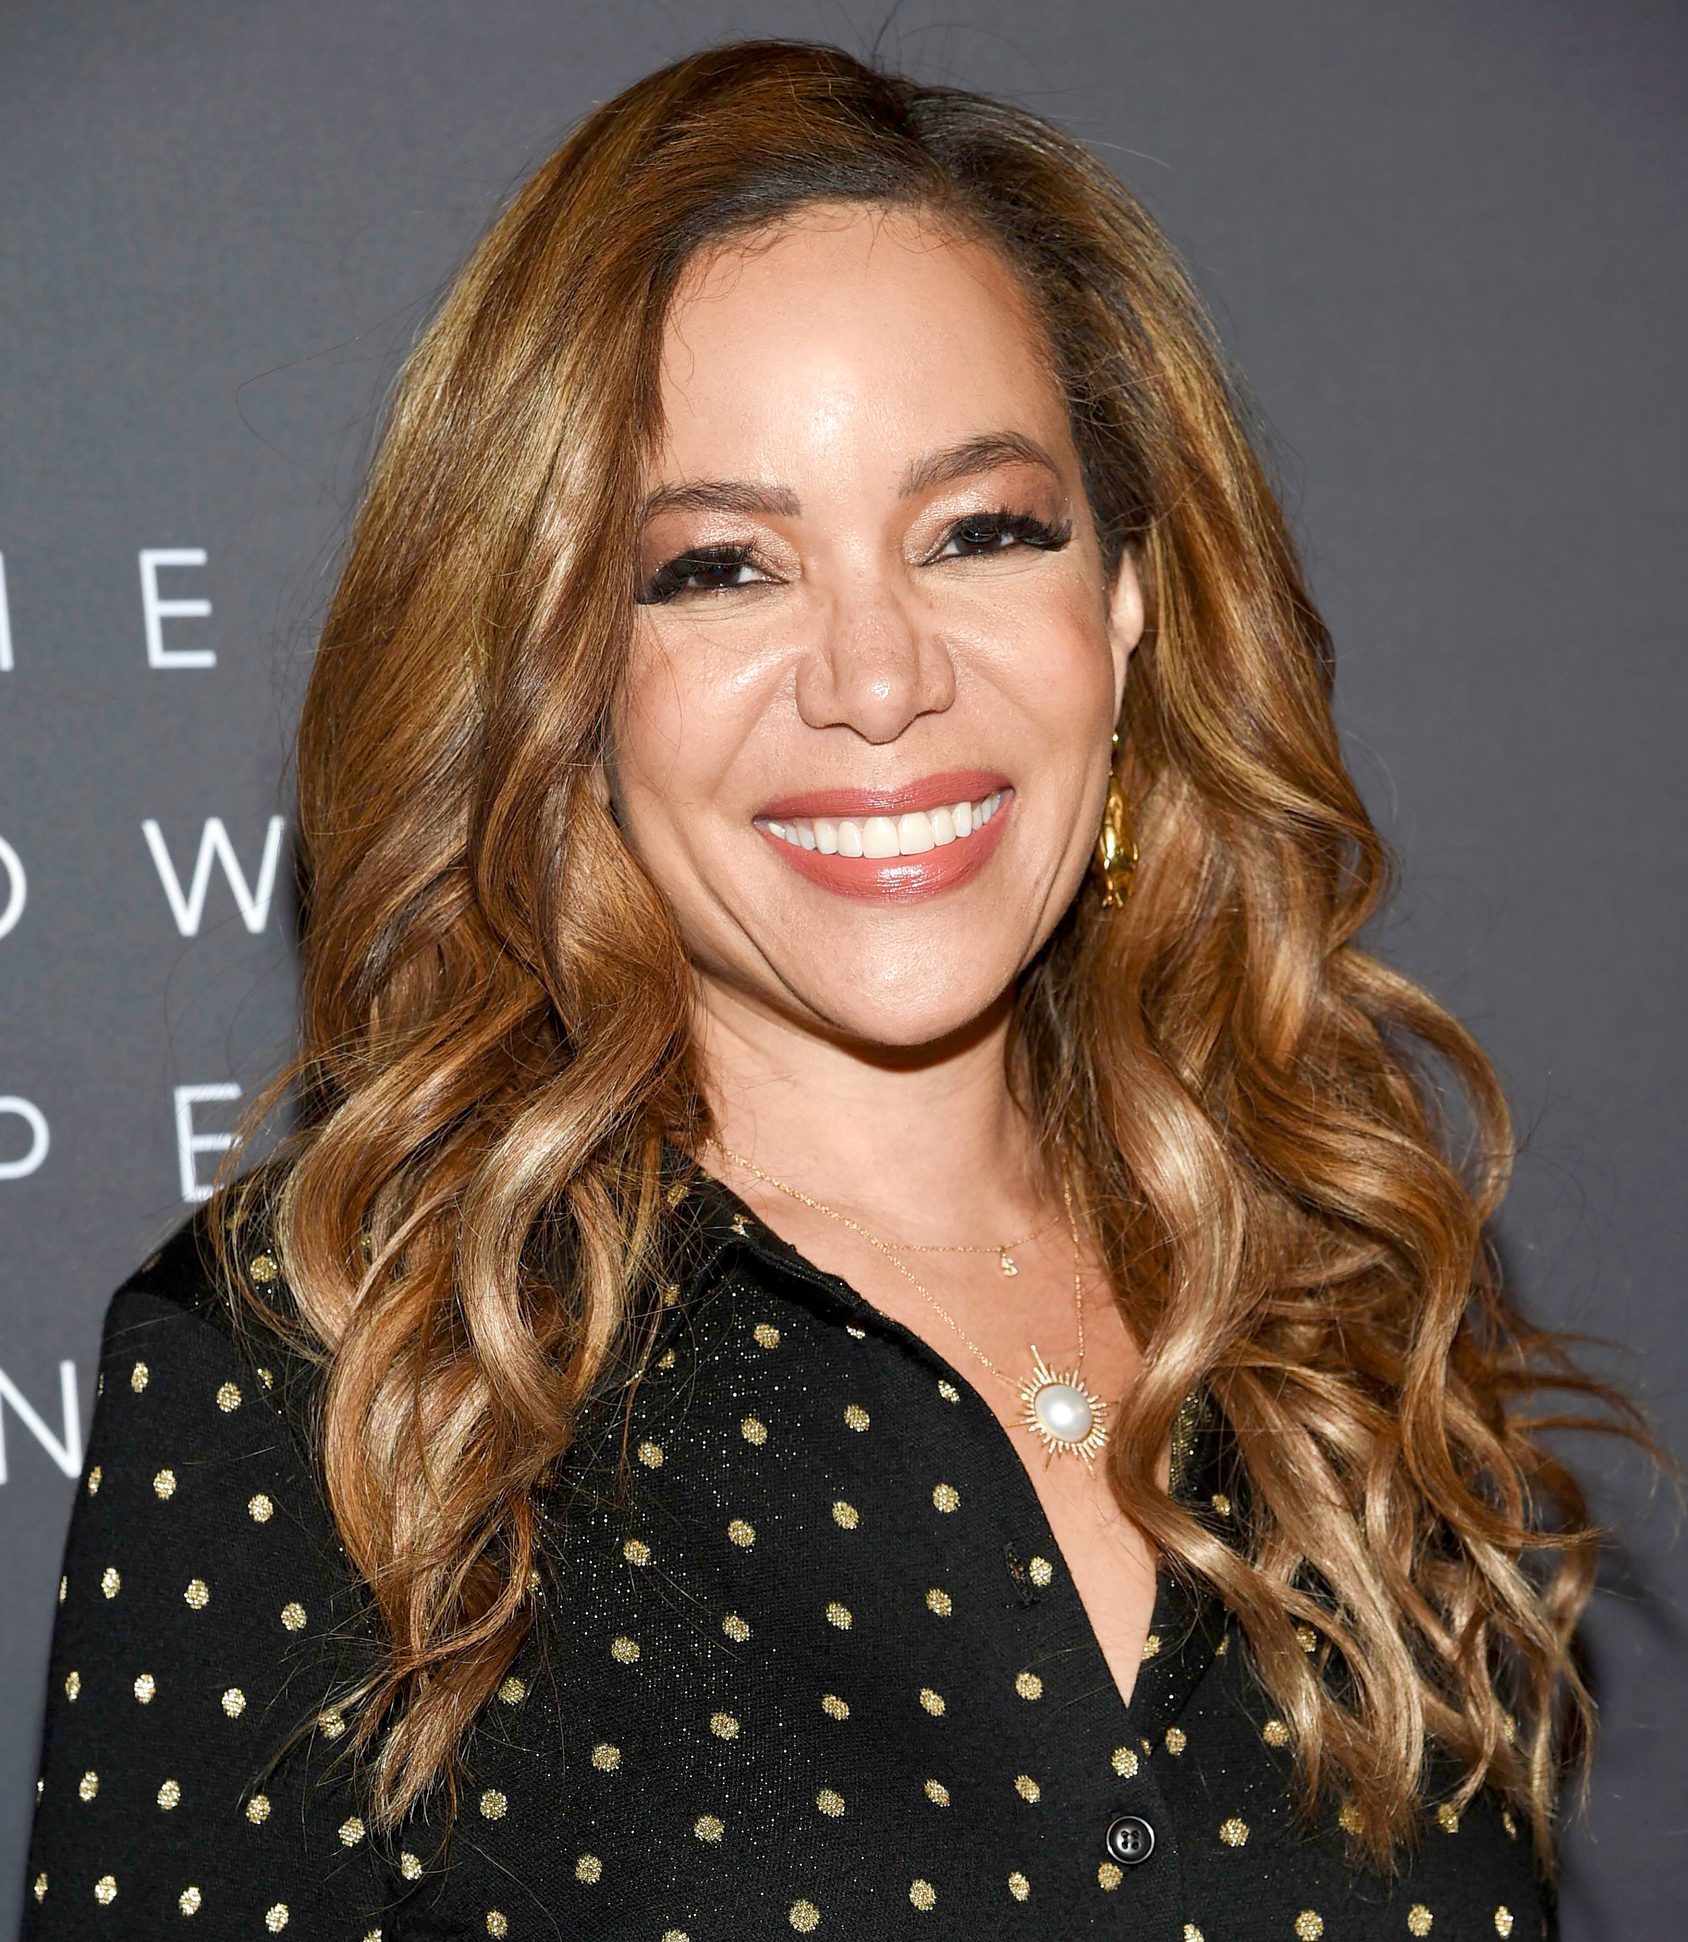 Sunny Hostin: What's in My Bag?